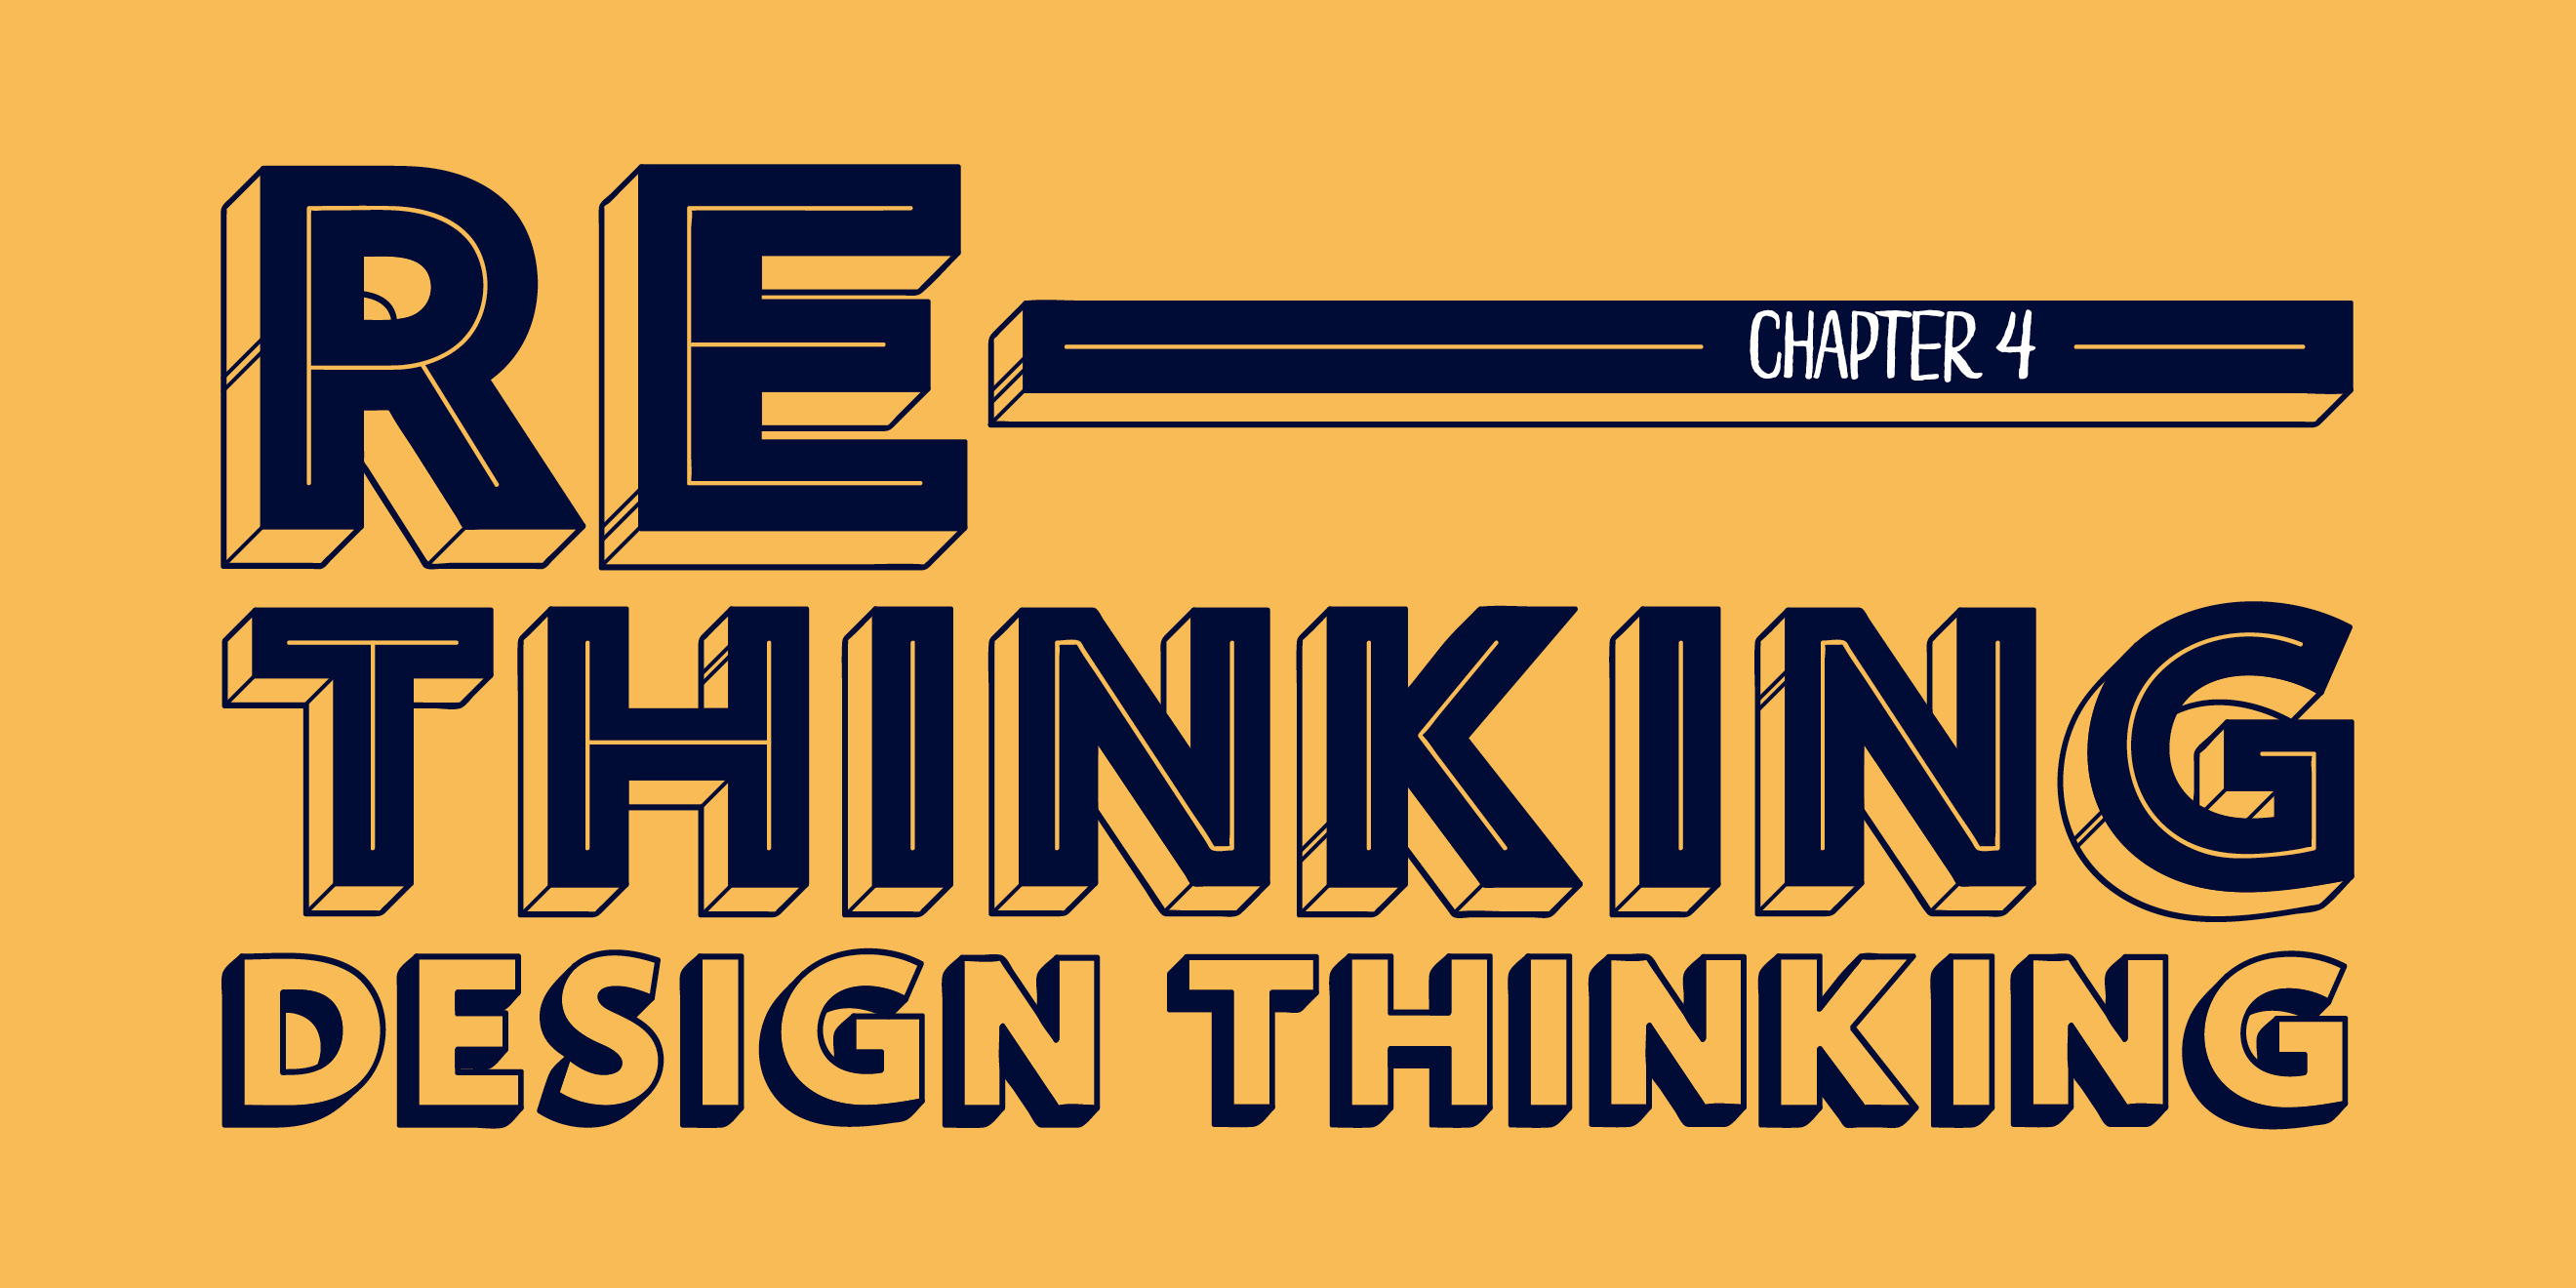 'Re-thinking Design Thinking' - title typography design for 'The Way To Design'